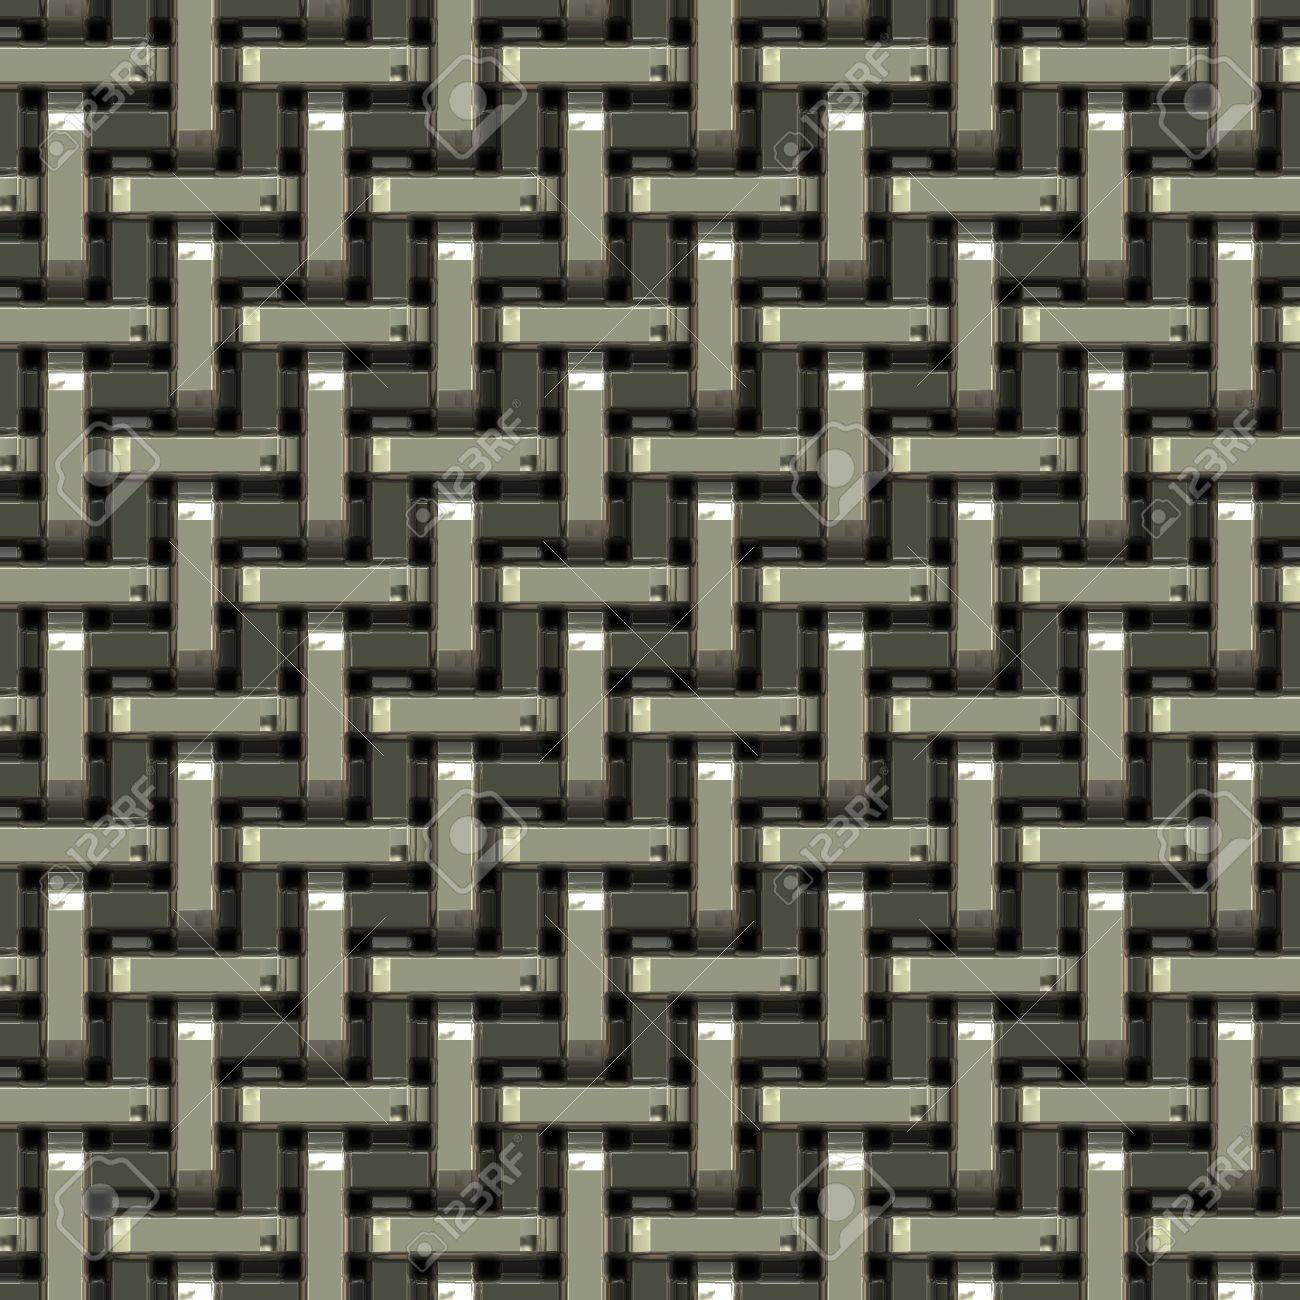 A seamless pattern of a silver metal grate or mesh material. Stock Photo - 6053449